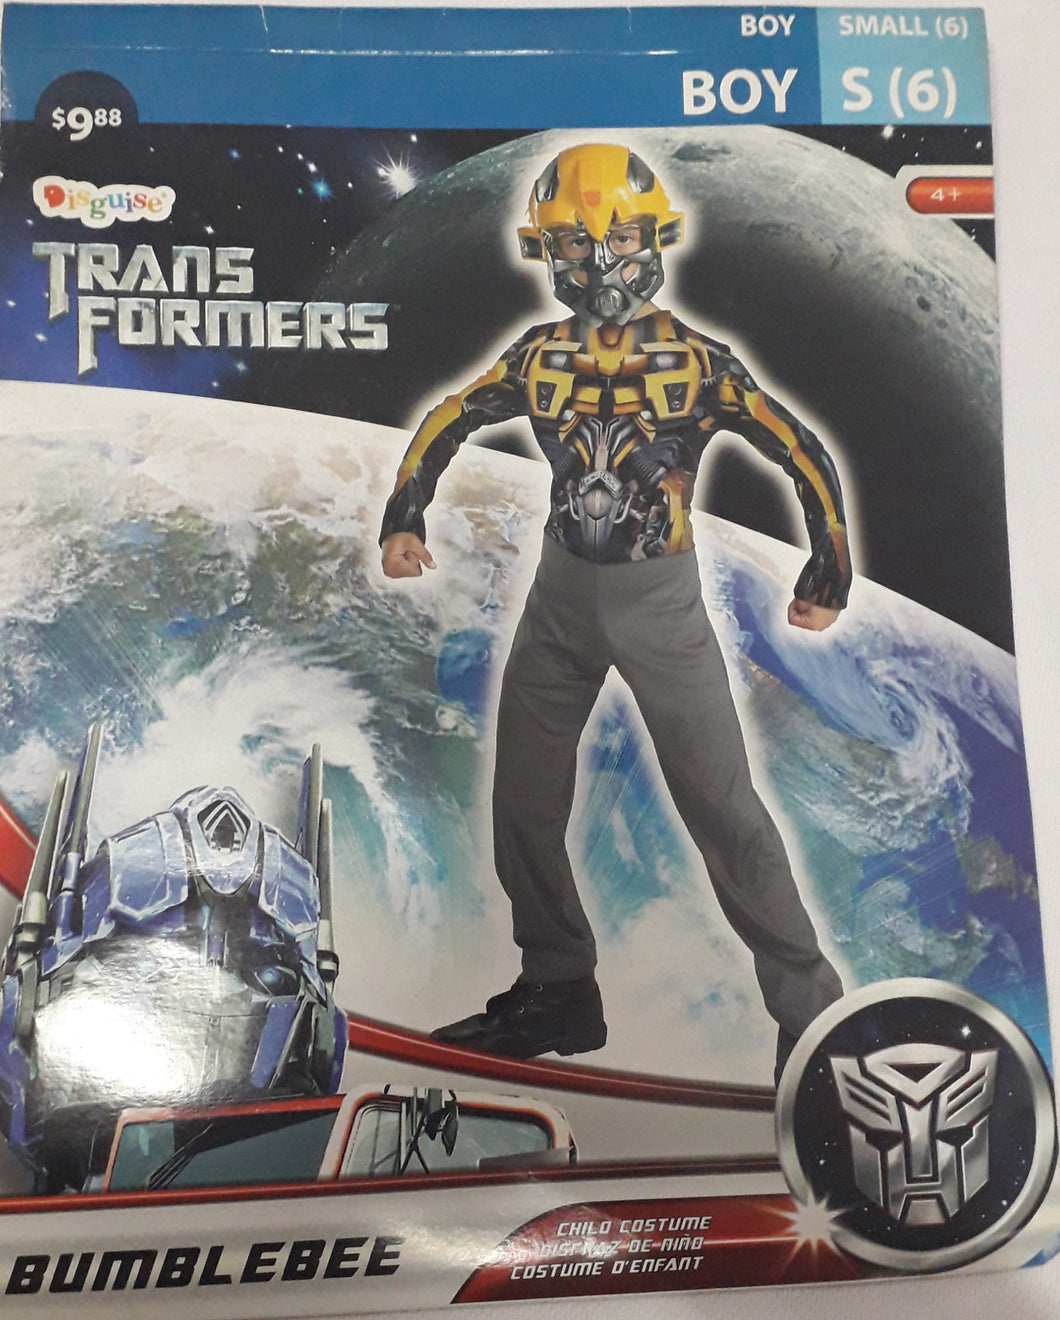 Transformers bumble bee costume for kids (6-7yo)